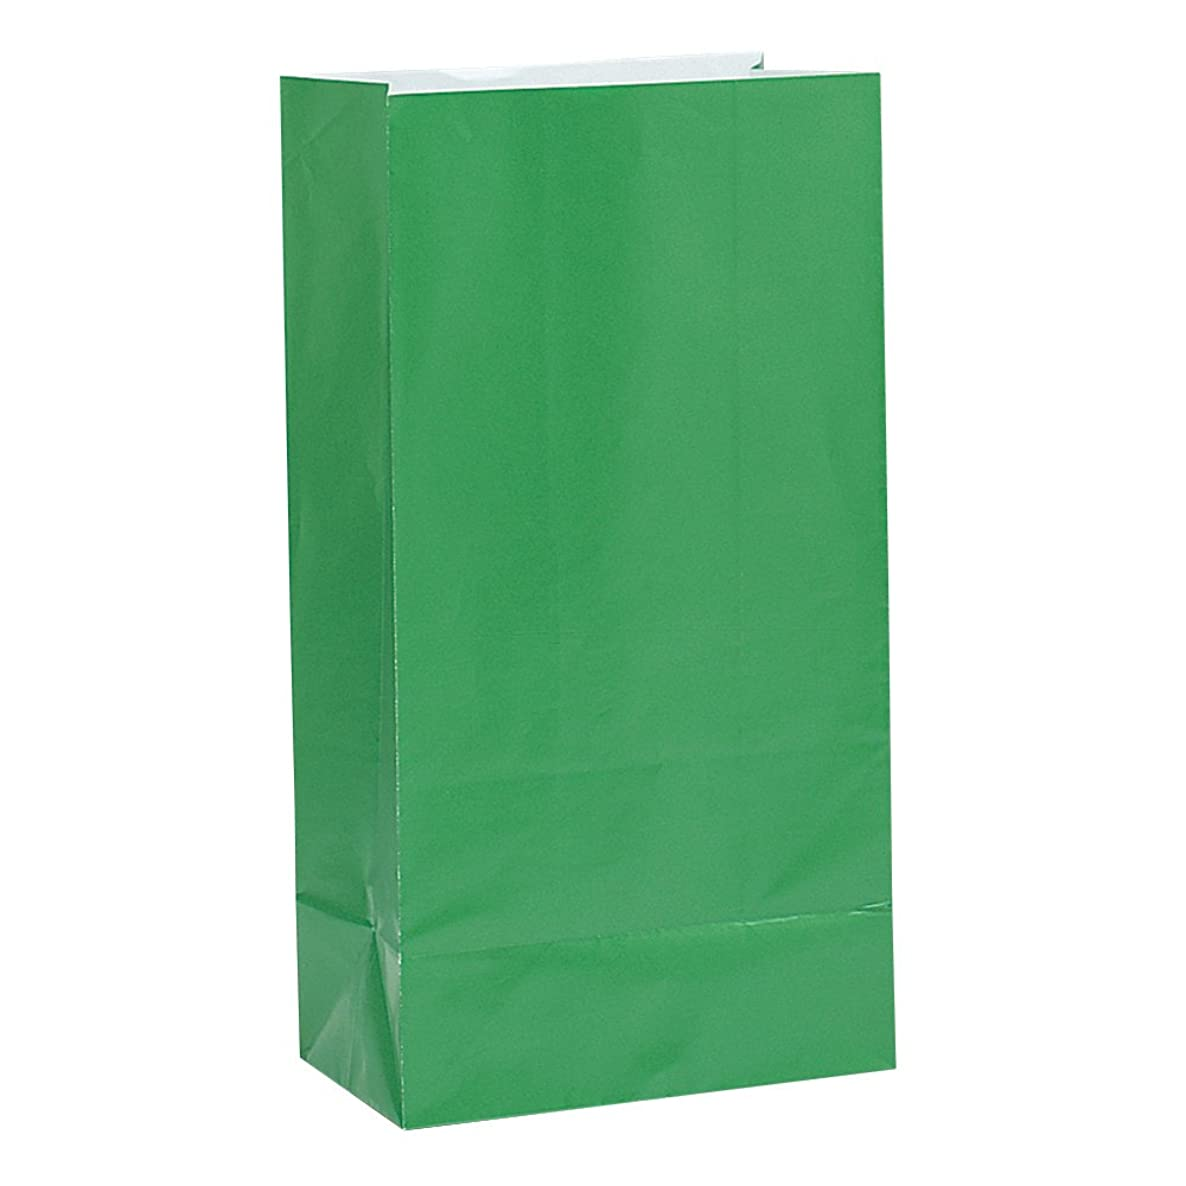 Green Paper Party Favor Bags, 12ct